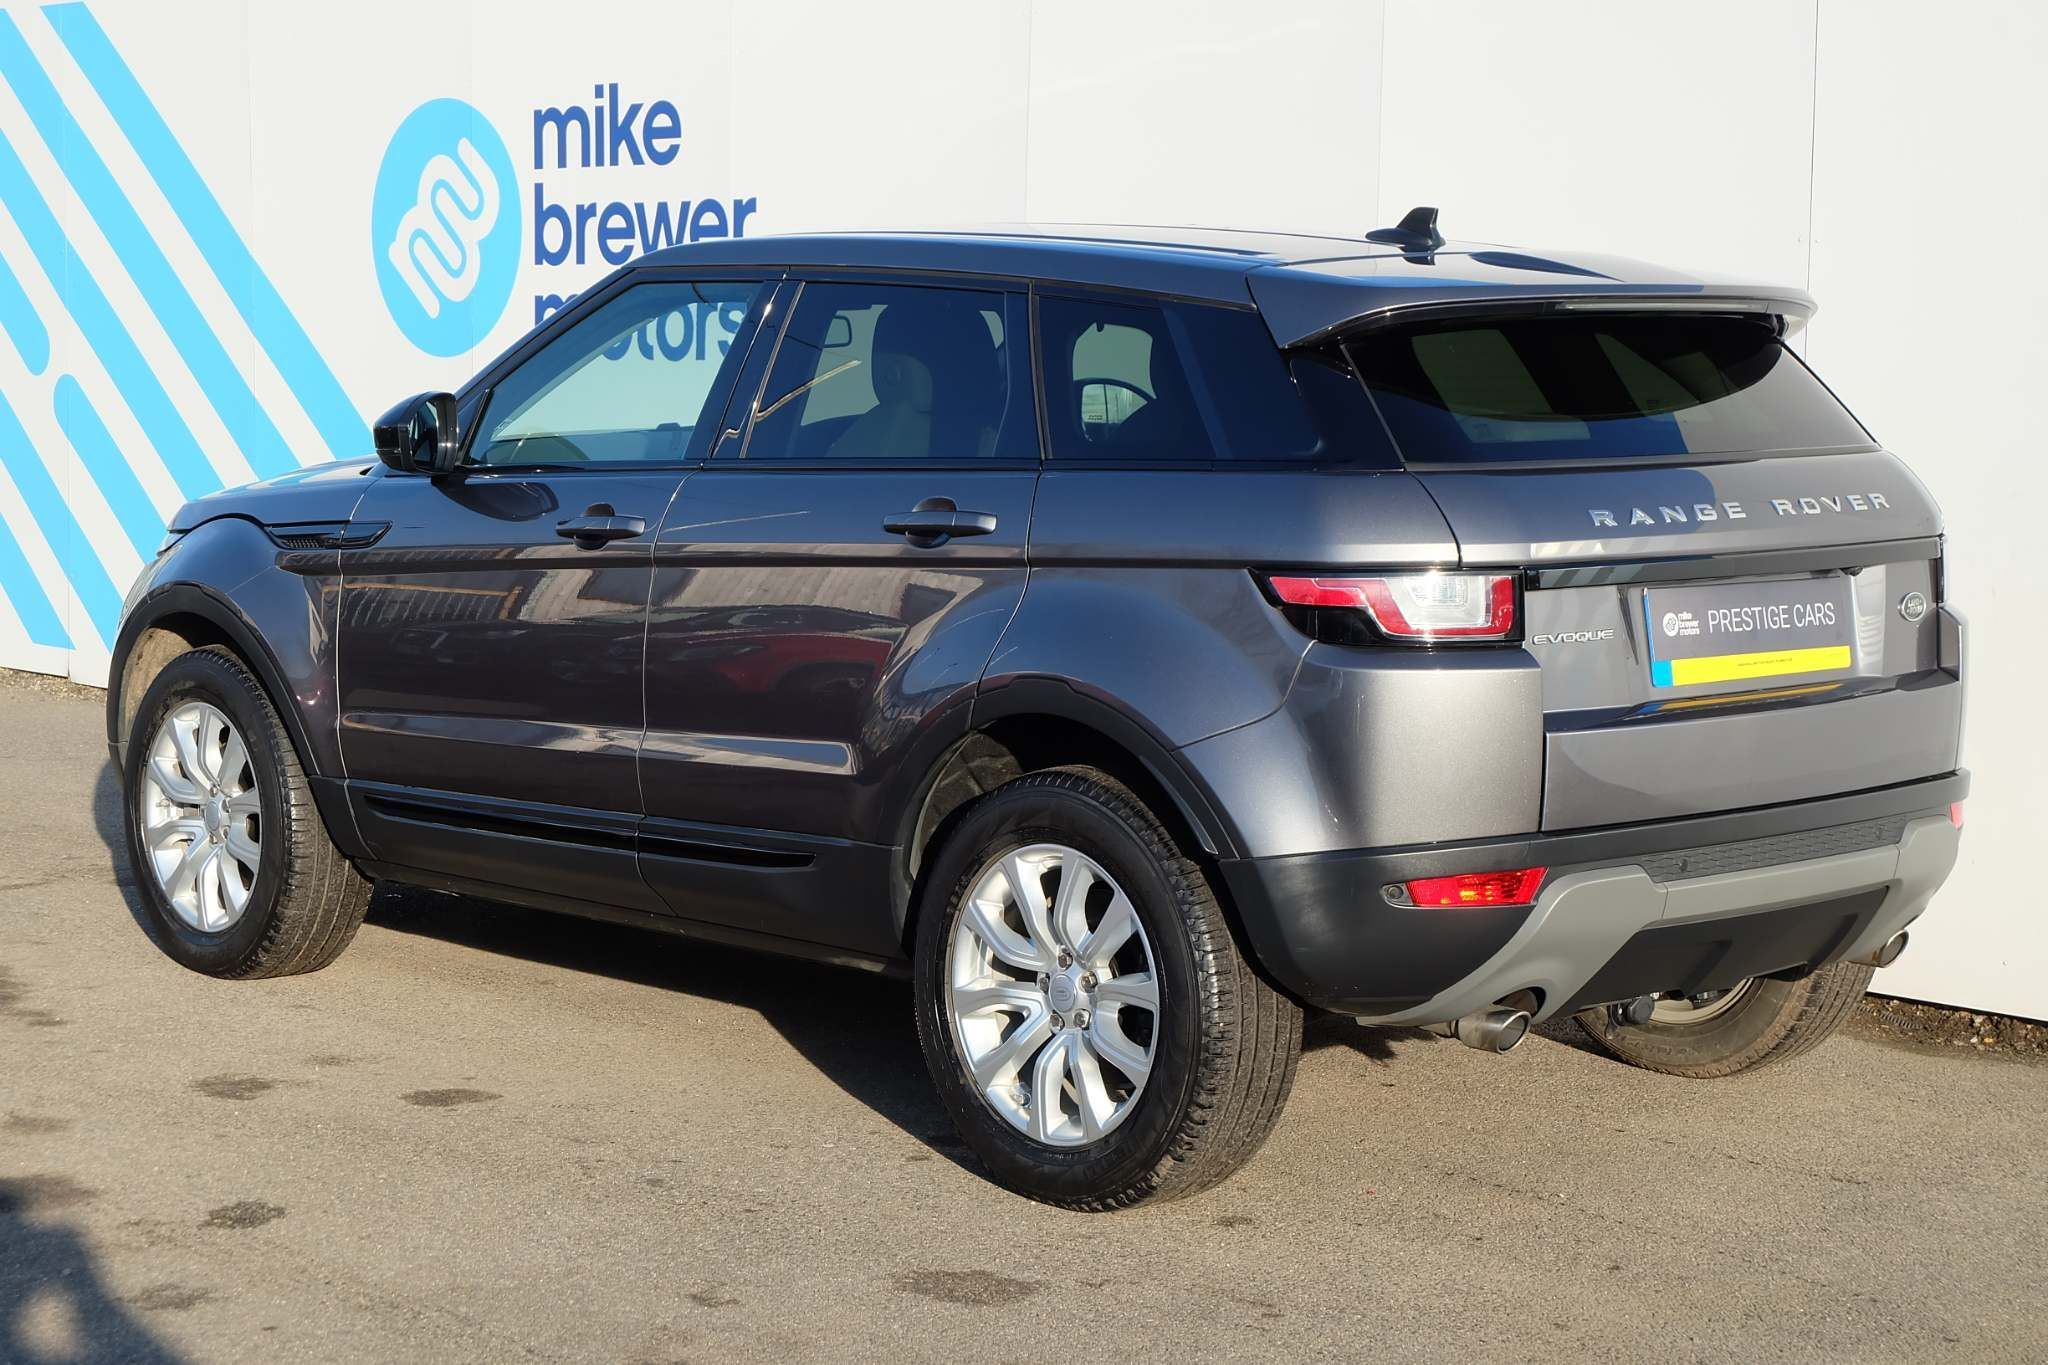 Used Land Rover Range Rover Evoque 2.0 Td4 Se Tech 4wd (s/s) 5dr